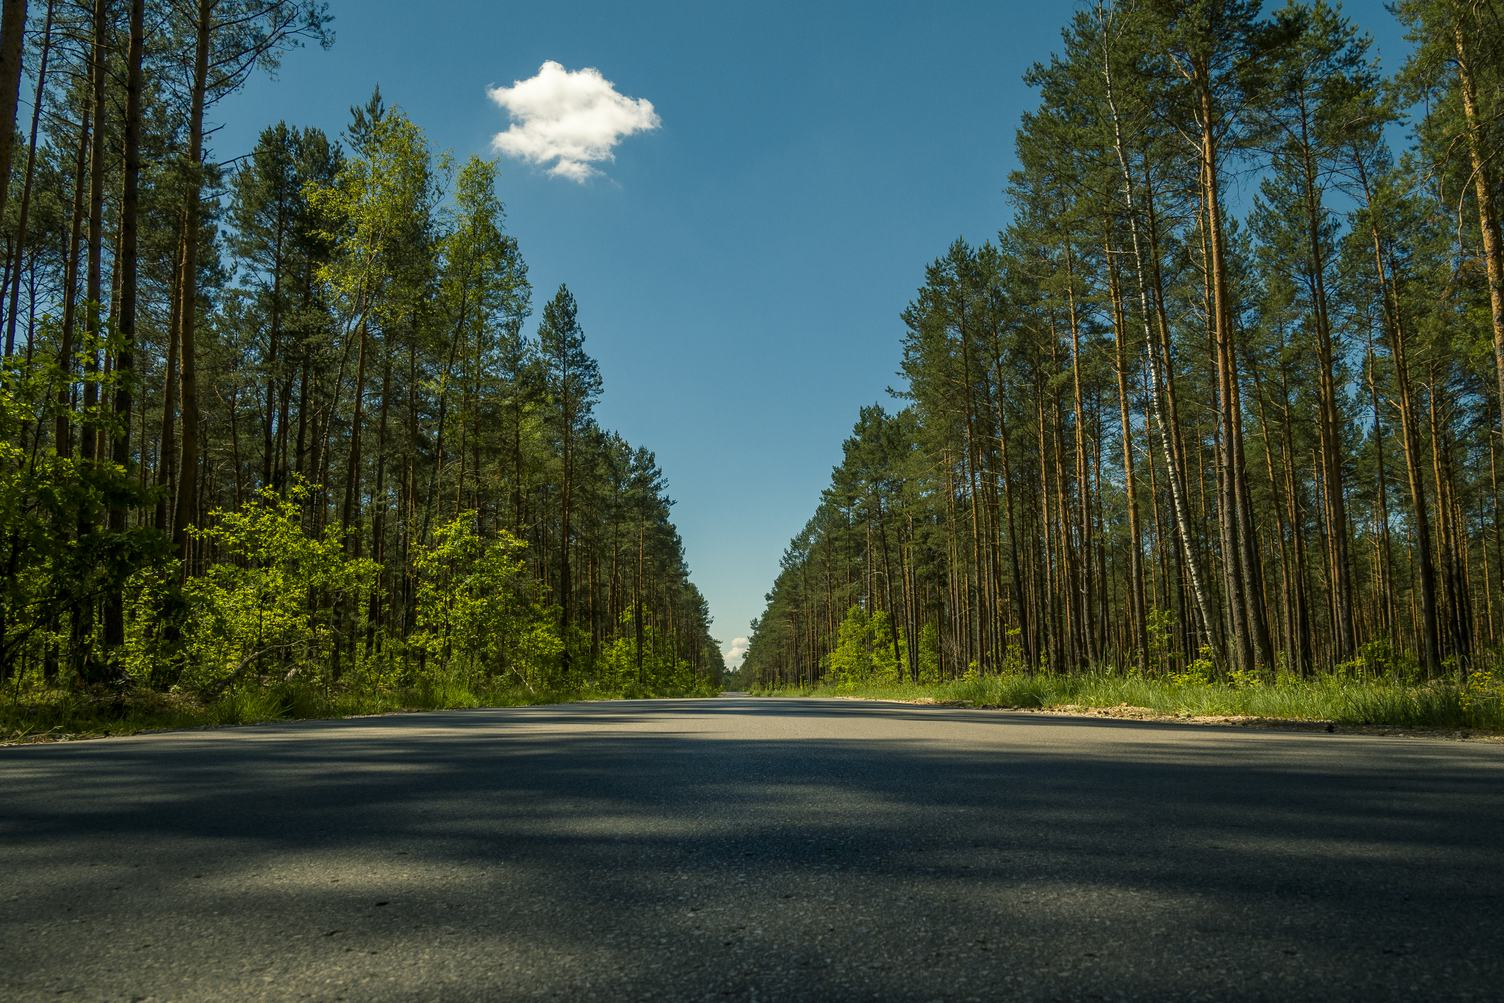 Straight Asphalt Road in the Forest